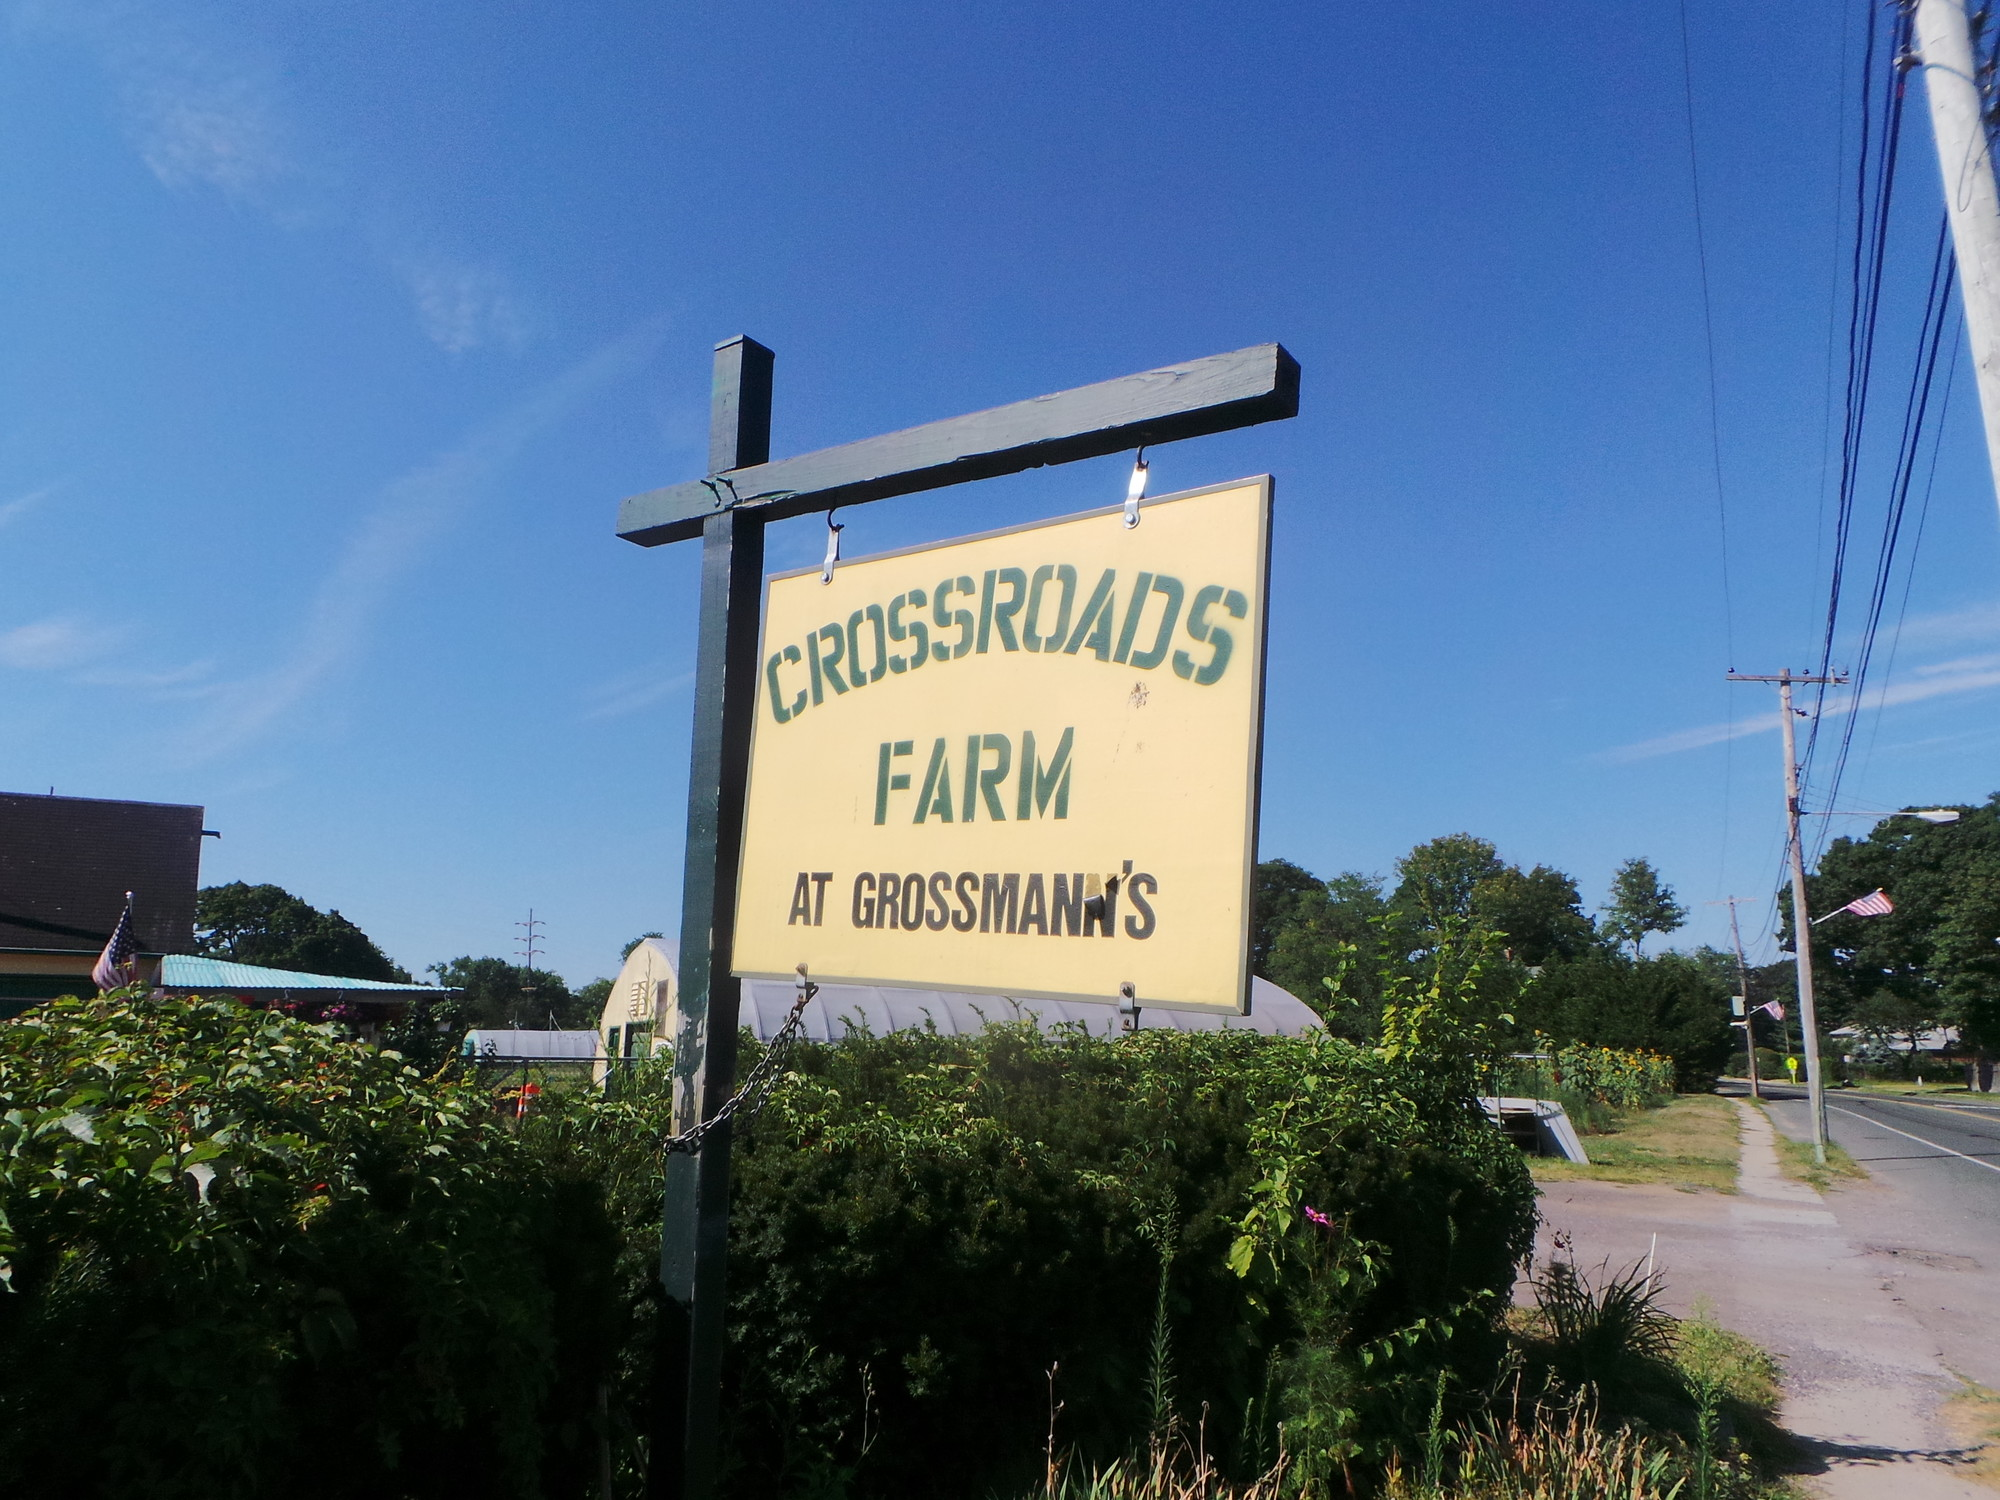 Crossroads Farm's Folk Festival will be the first of its kind in southwest Nassau County.